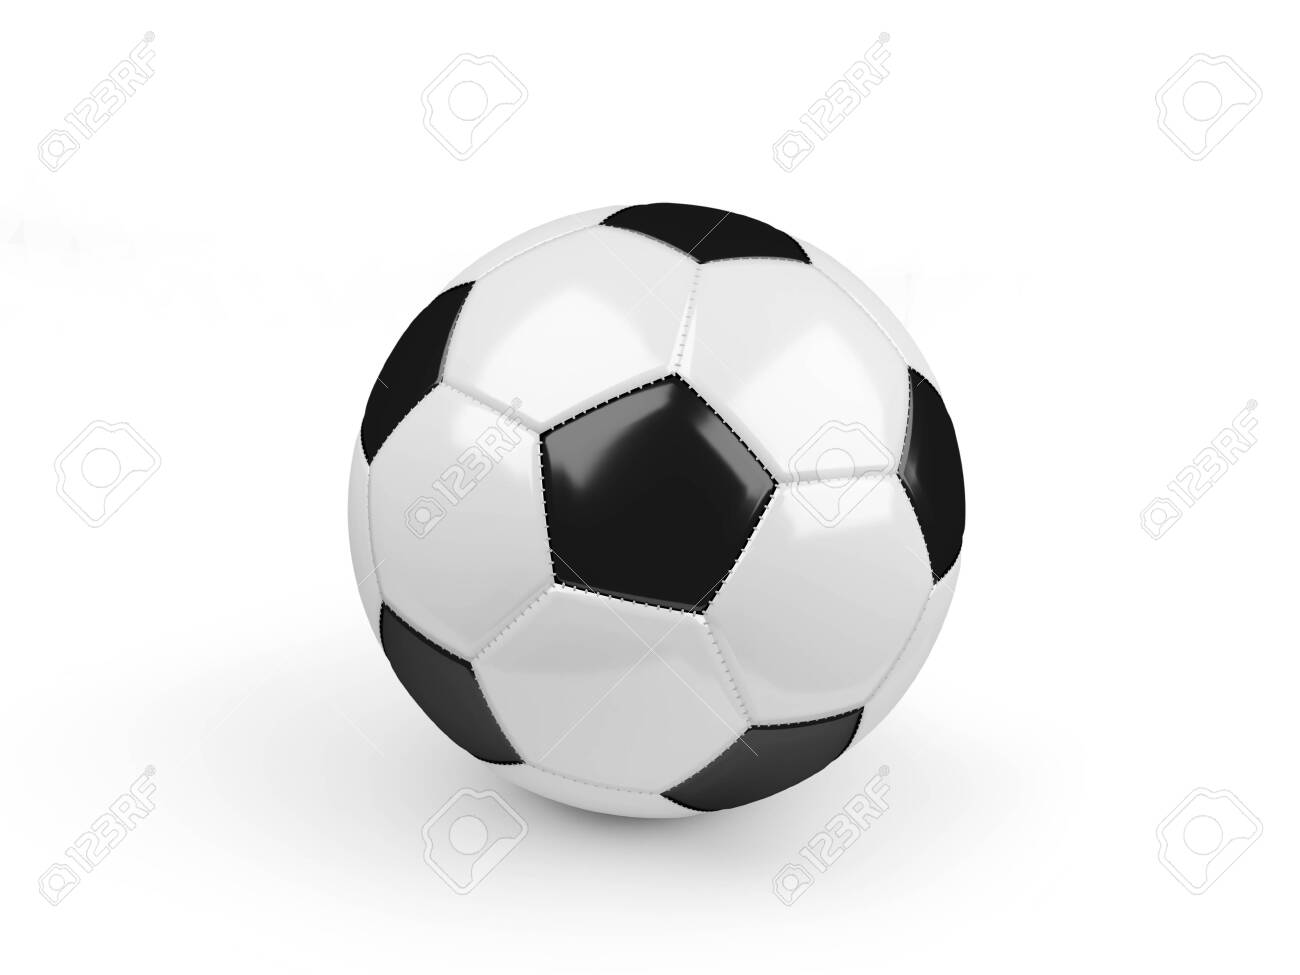 Soccer ball isolated on white - 133799454